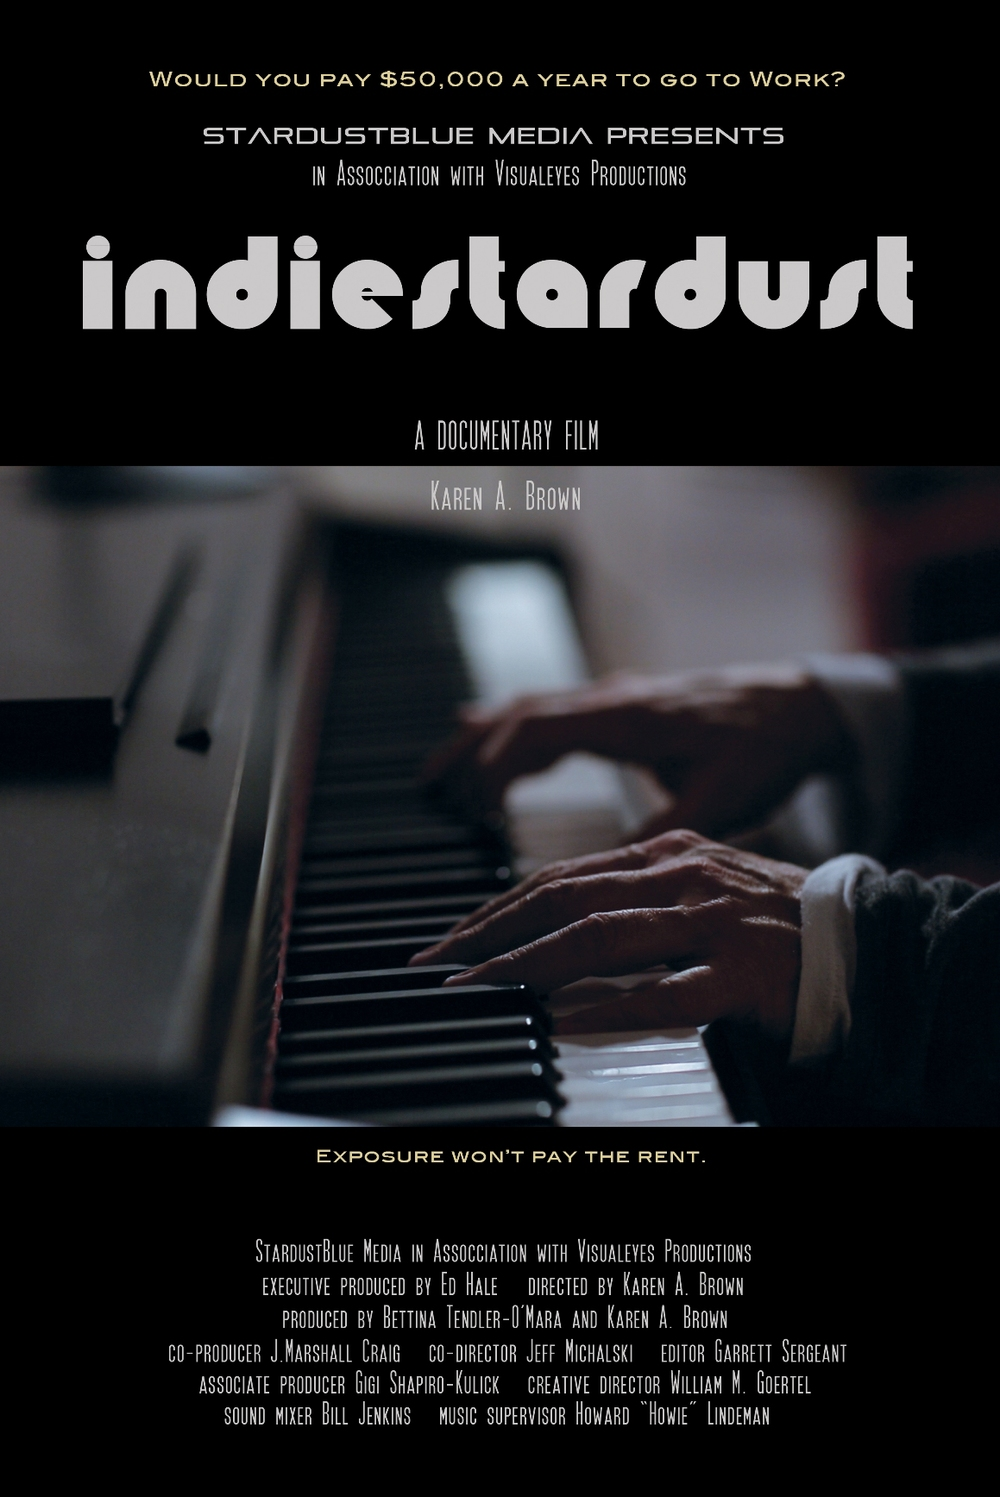 """IndieStardust"" Official Poster"